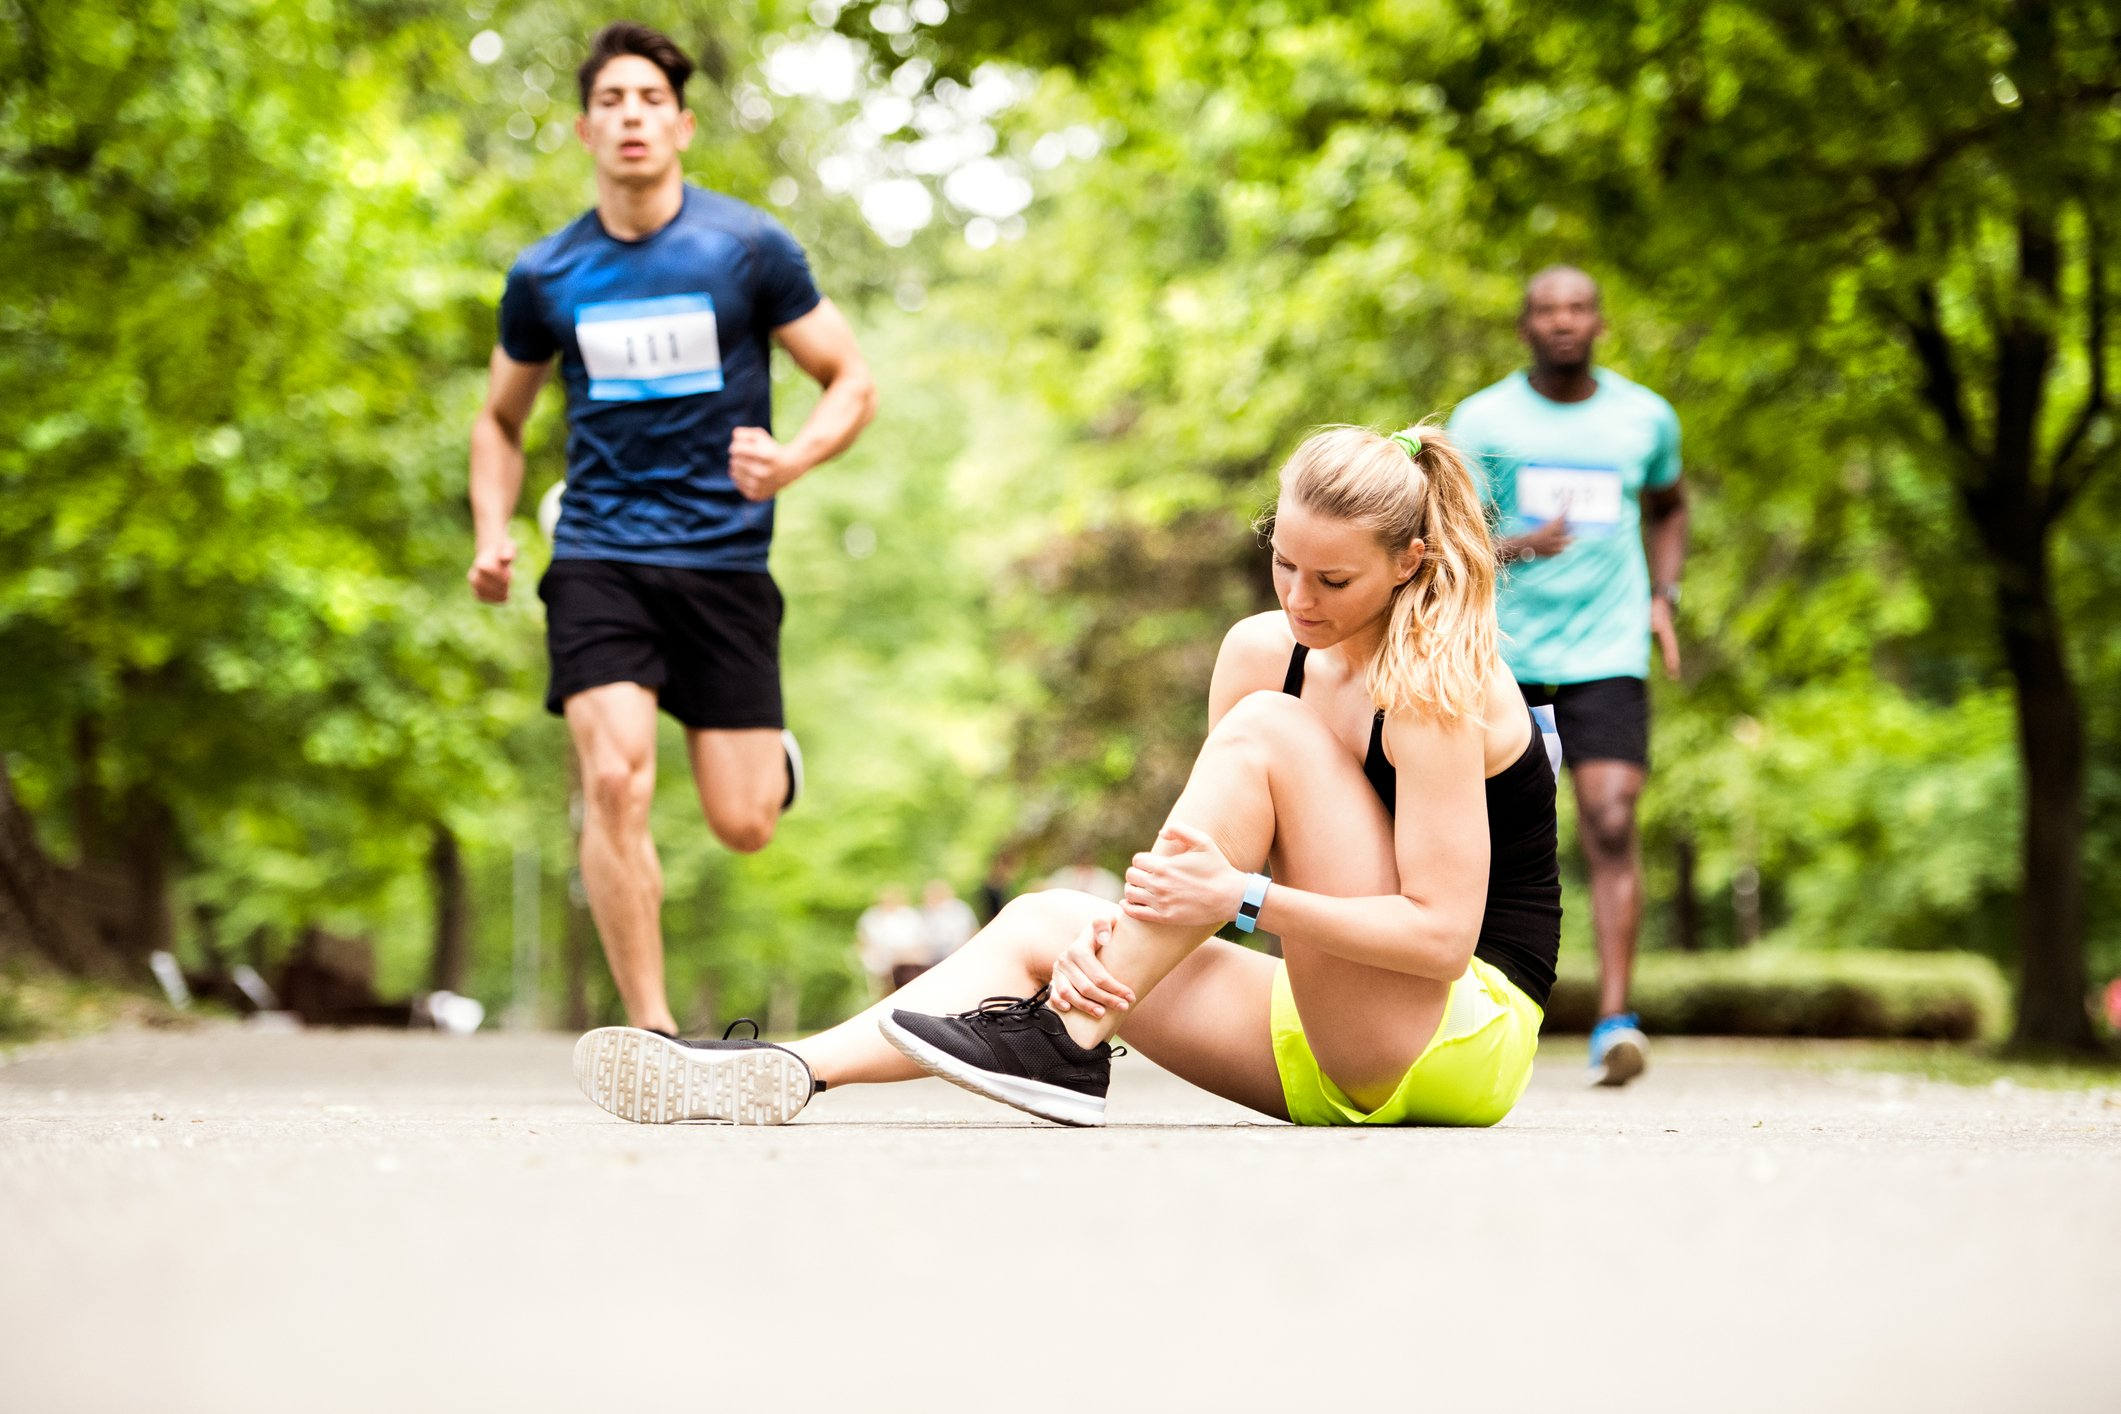 Ankle sprains are the most common orthopedic injury